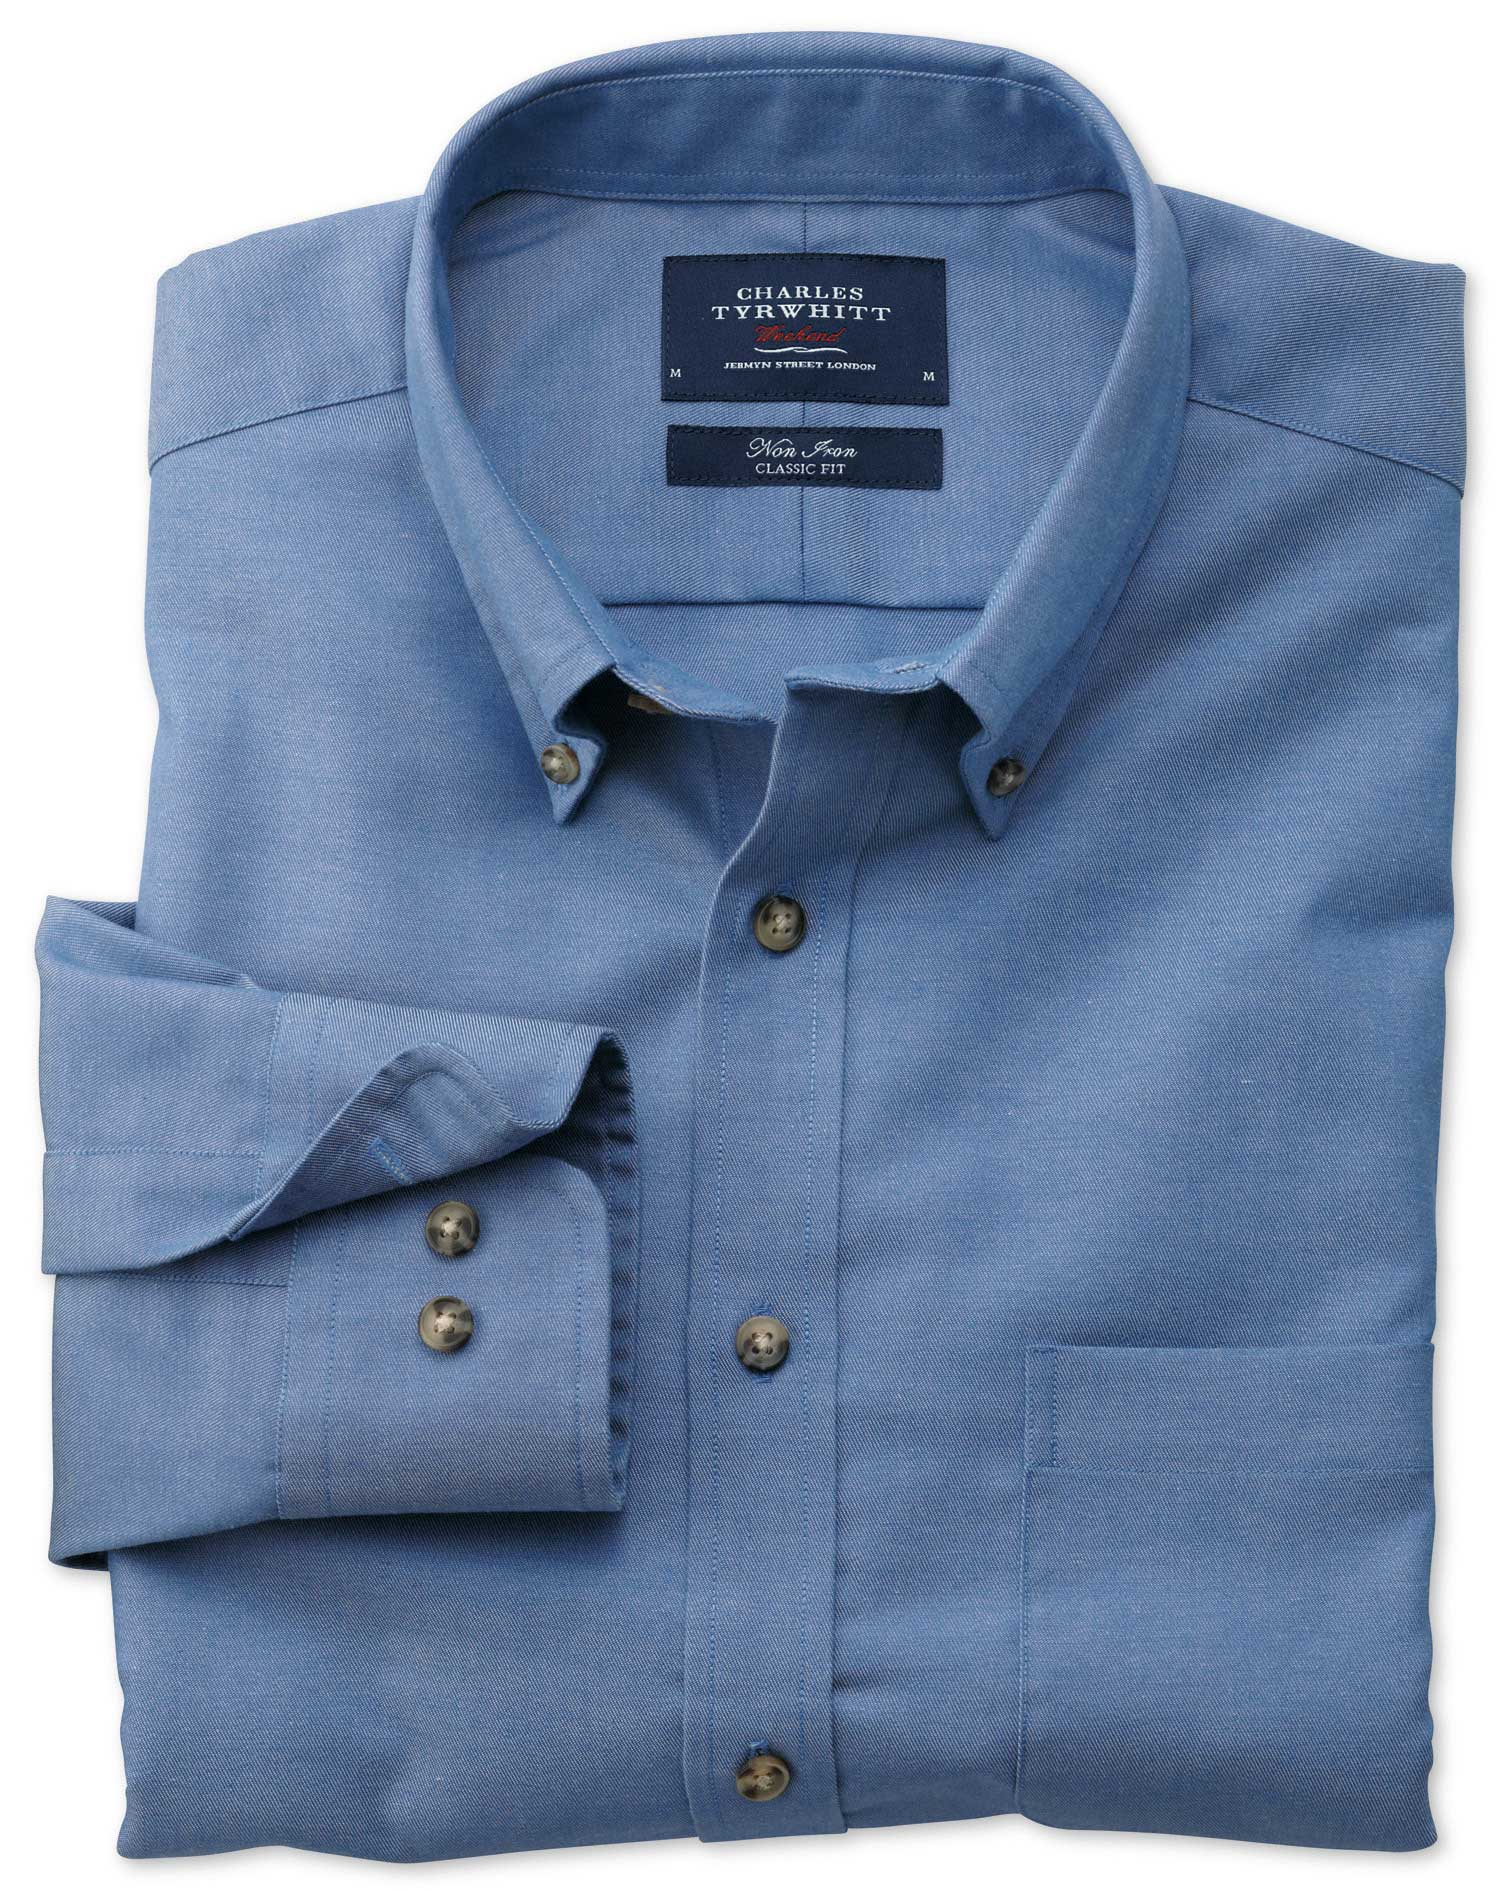 Slim Fit Non-Iron Twill Blue Cotton Shirt Single Cuff Size Medium by Charles Tyrwhitt